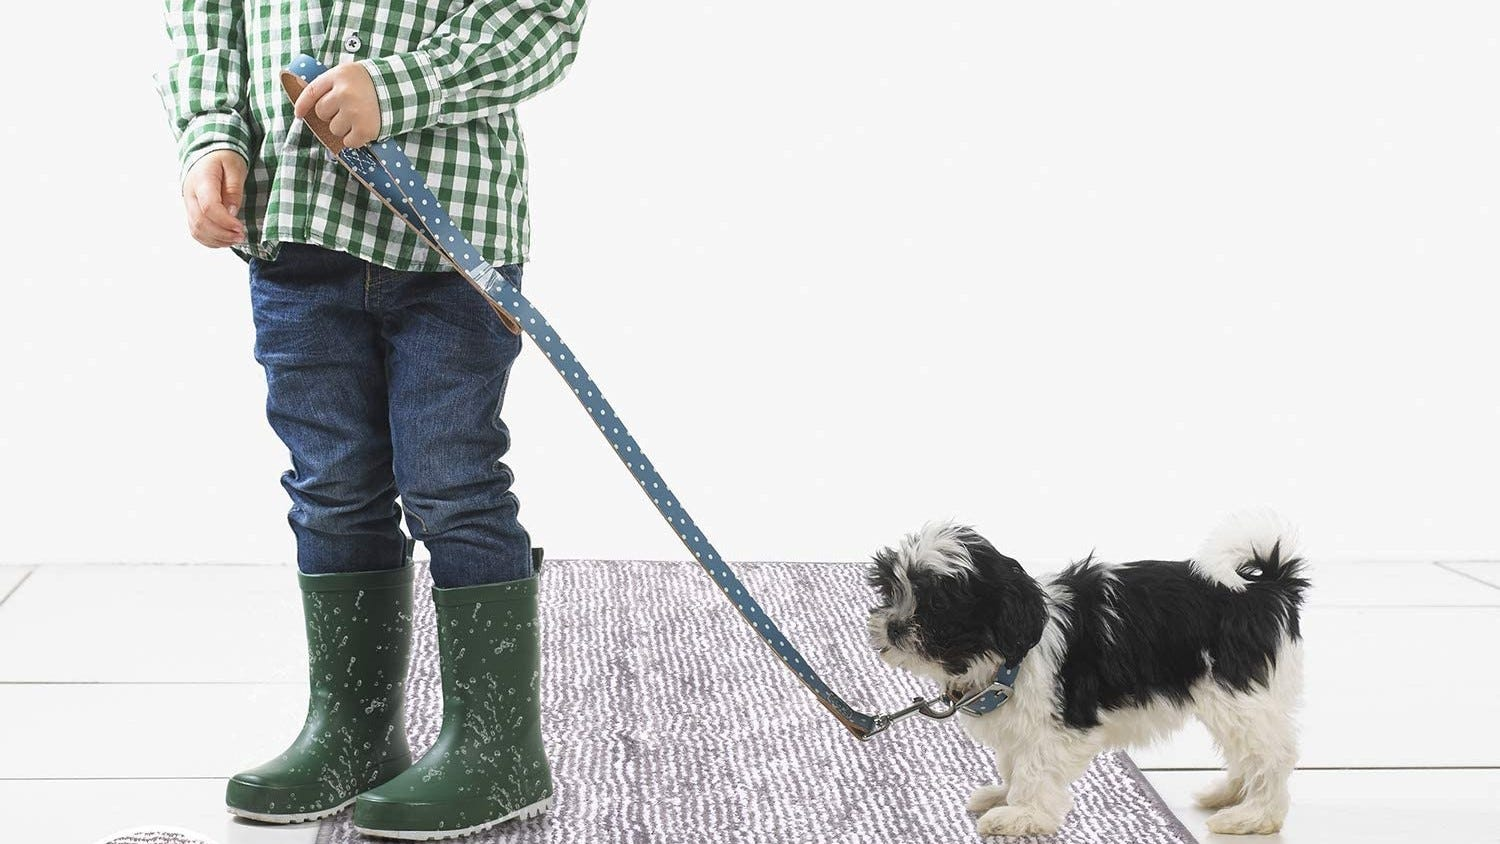 A man with wet boots standing on the Refetone Absorbent Mat with a leashed dog.